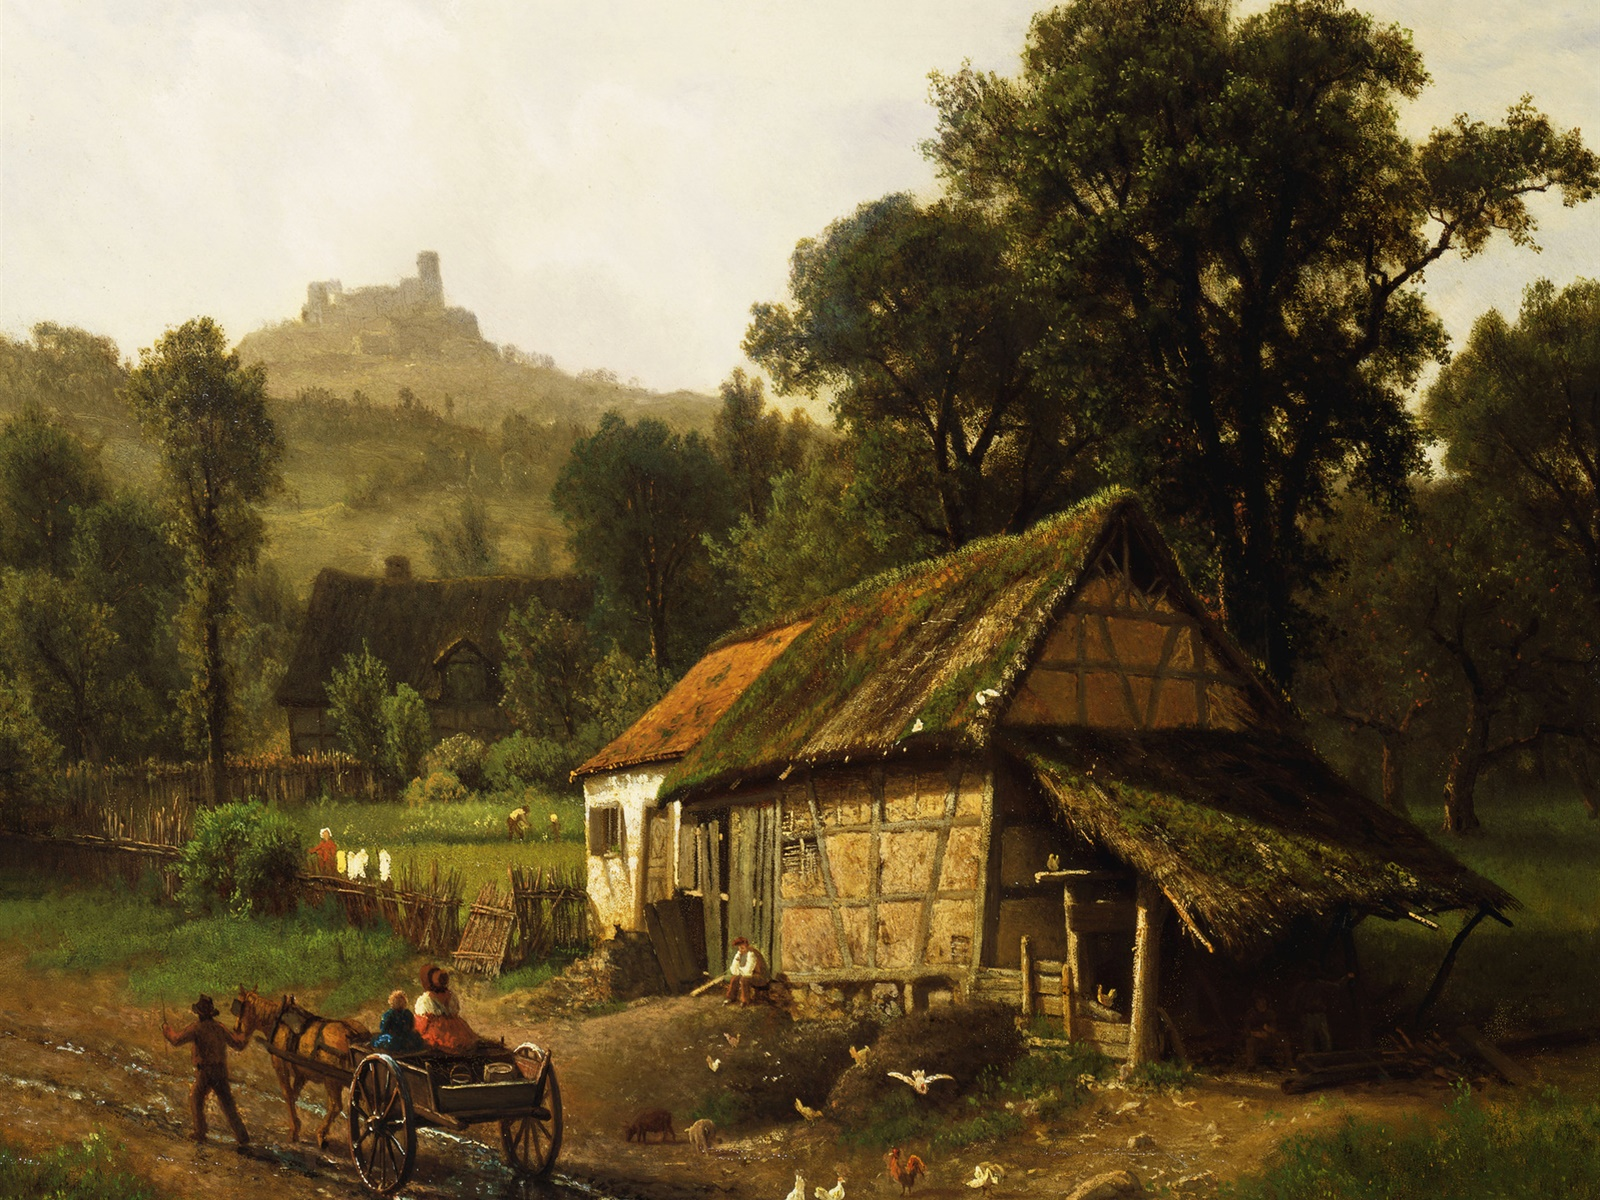 Art painting, countryside, house, wagon, trees, mountain 1600x1200 wallpaper